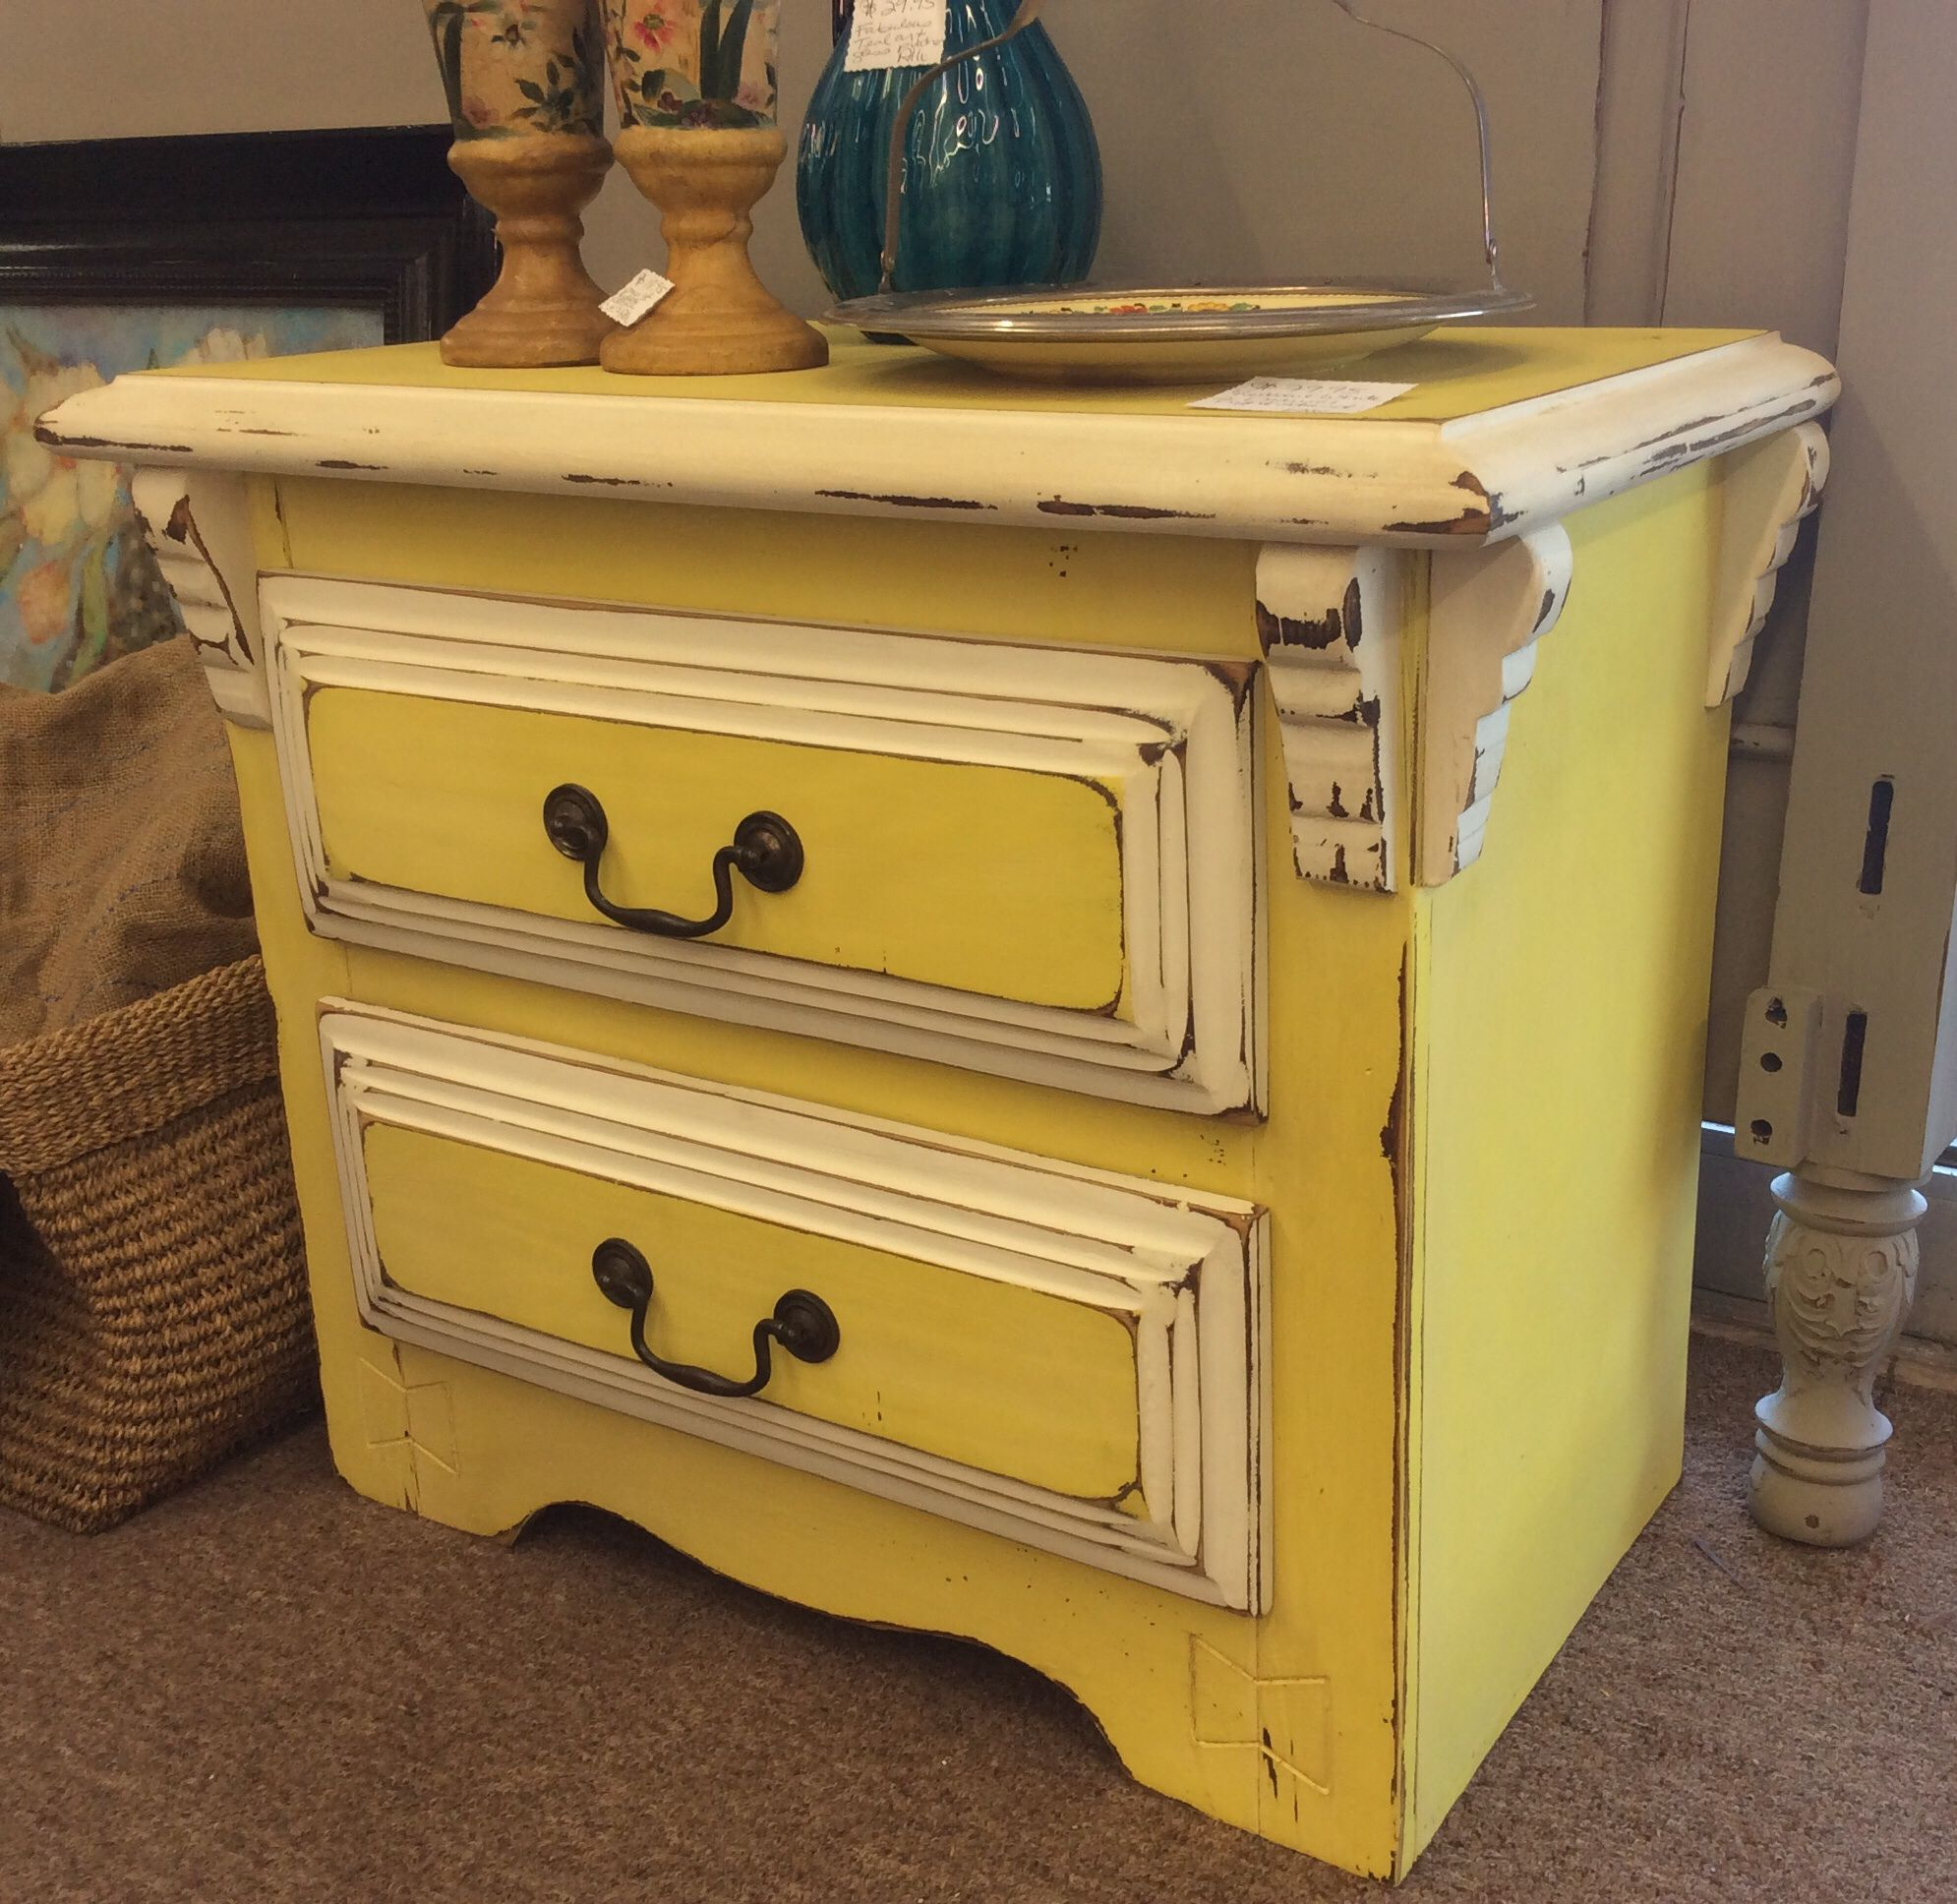 79 95 Gorgeous Bright Yellow 2 Drawer Nightstand Found In Marietta On Sun 9 21 A Classy Flea Alli 1355 R With Images Redo Furniture Furniture Rehab Recycled Furniture